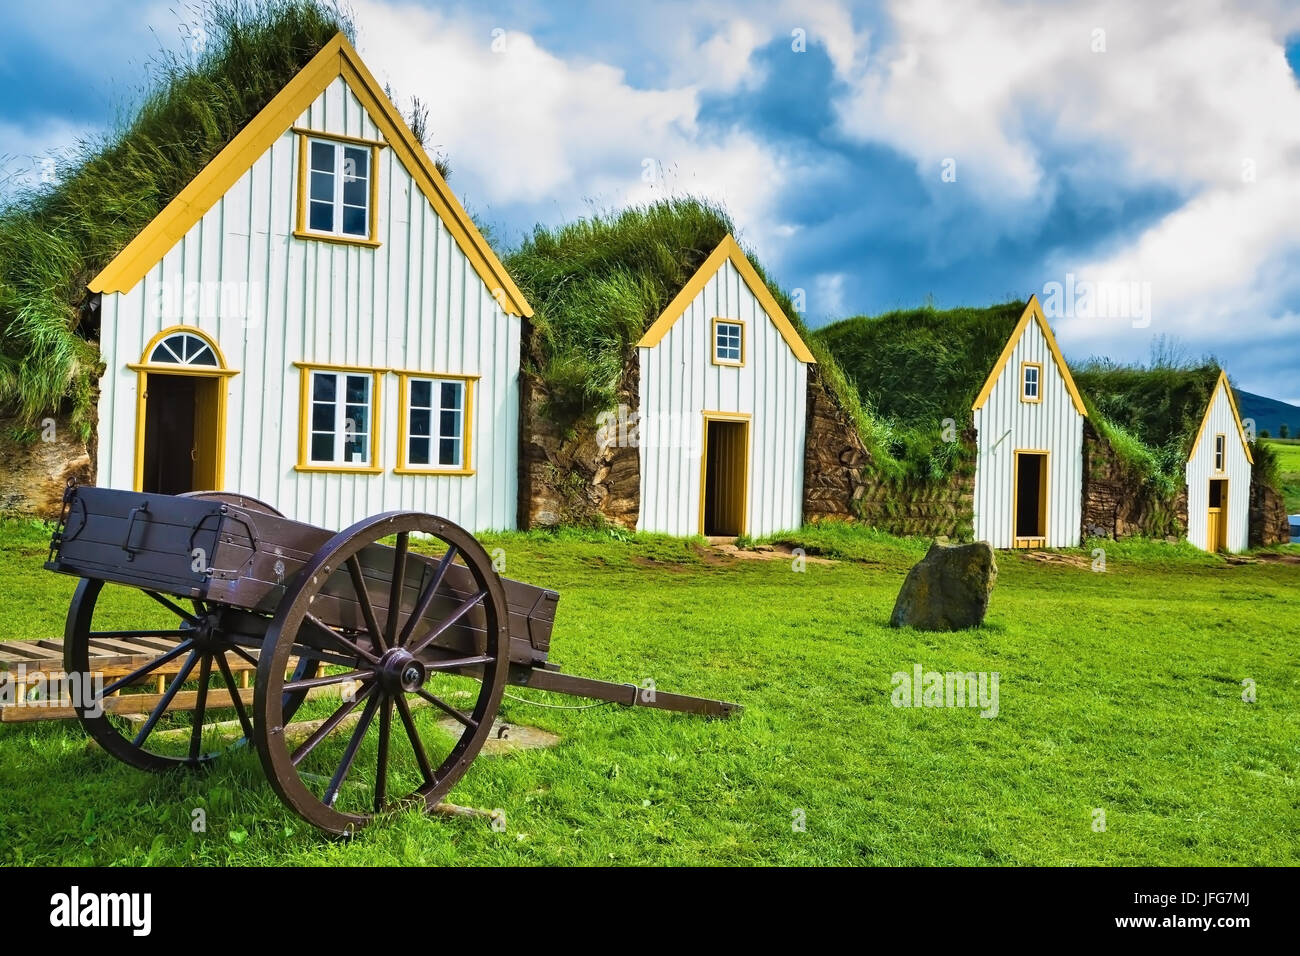 Old two-wheeled carriage - Stock Image